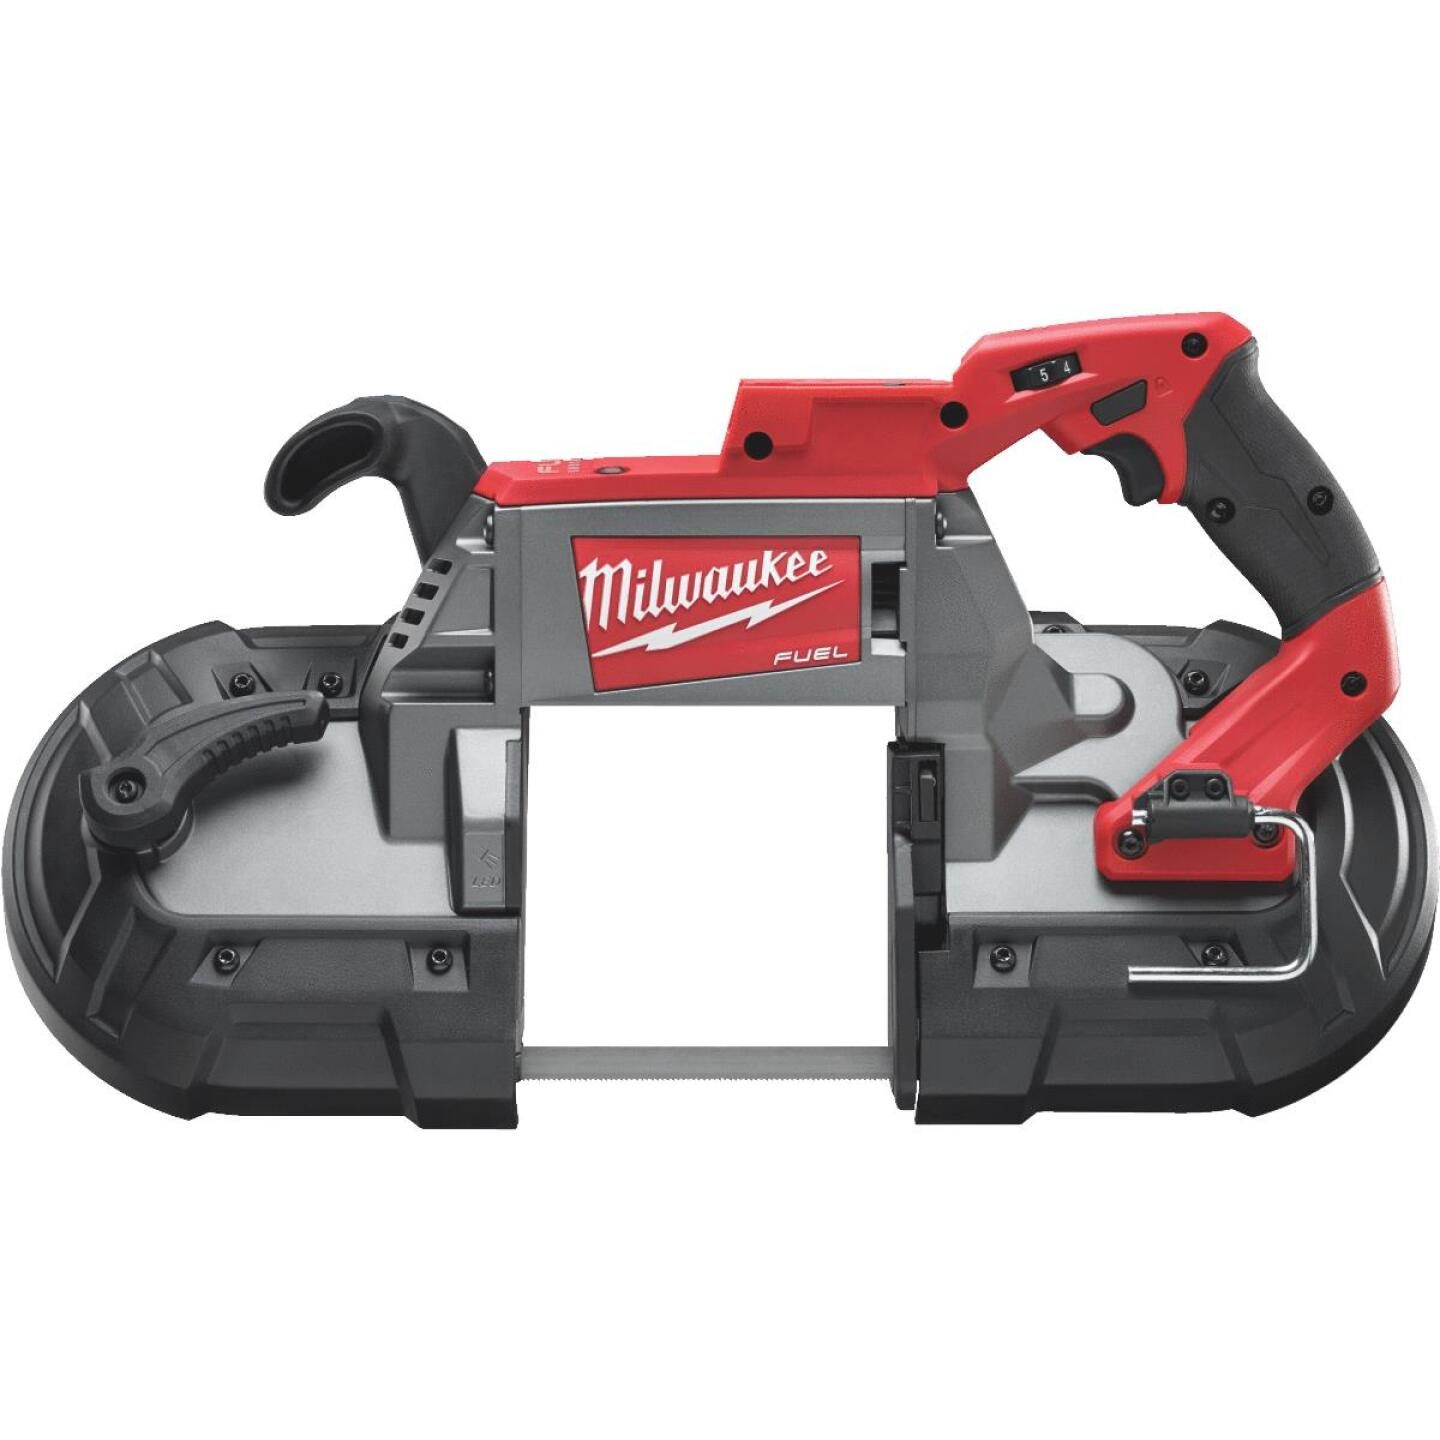 Milwaukee M18 FUEL 18 Volt Lithium-Ion Brushless Deep Cut Cordless Band Saw (Bare Tool) Image 1